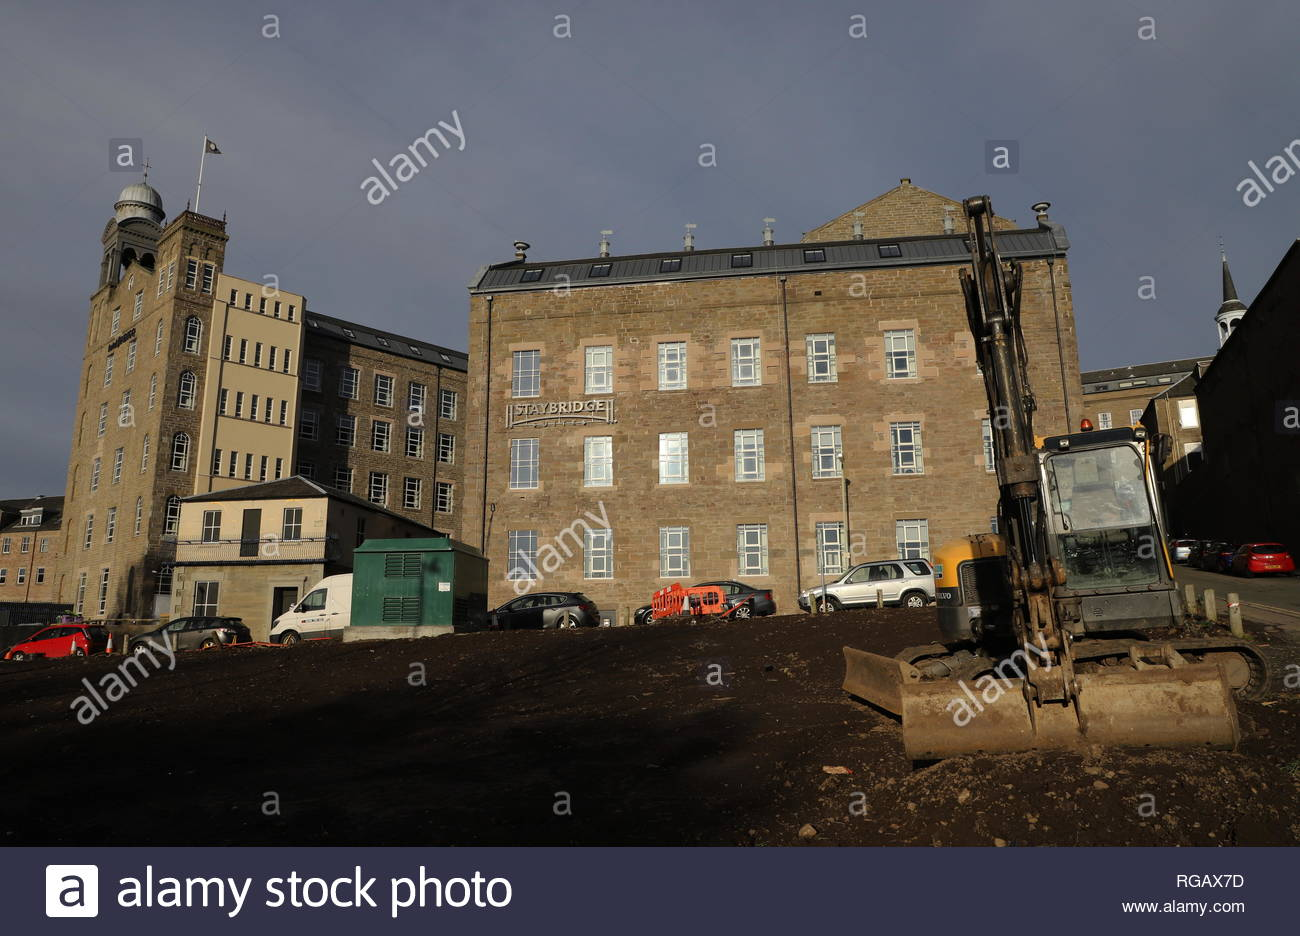 Hotel Indigo and Staybridge Suites Dundee Scotland  January 2019 - Stock Image